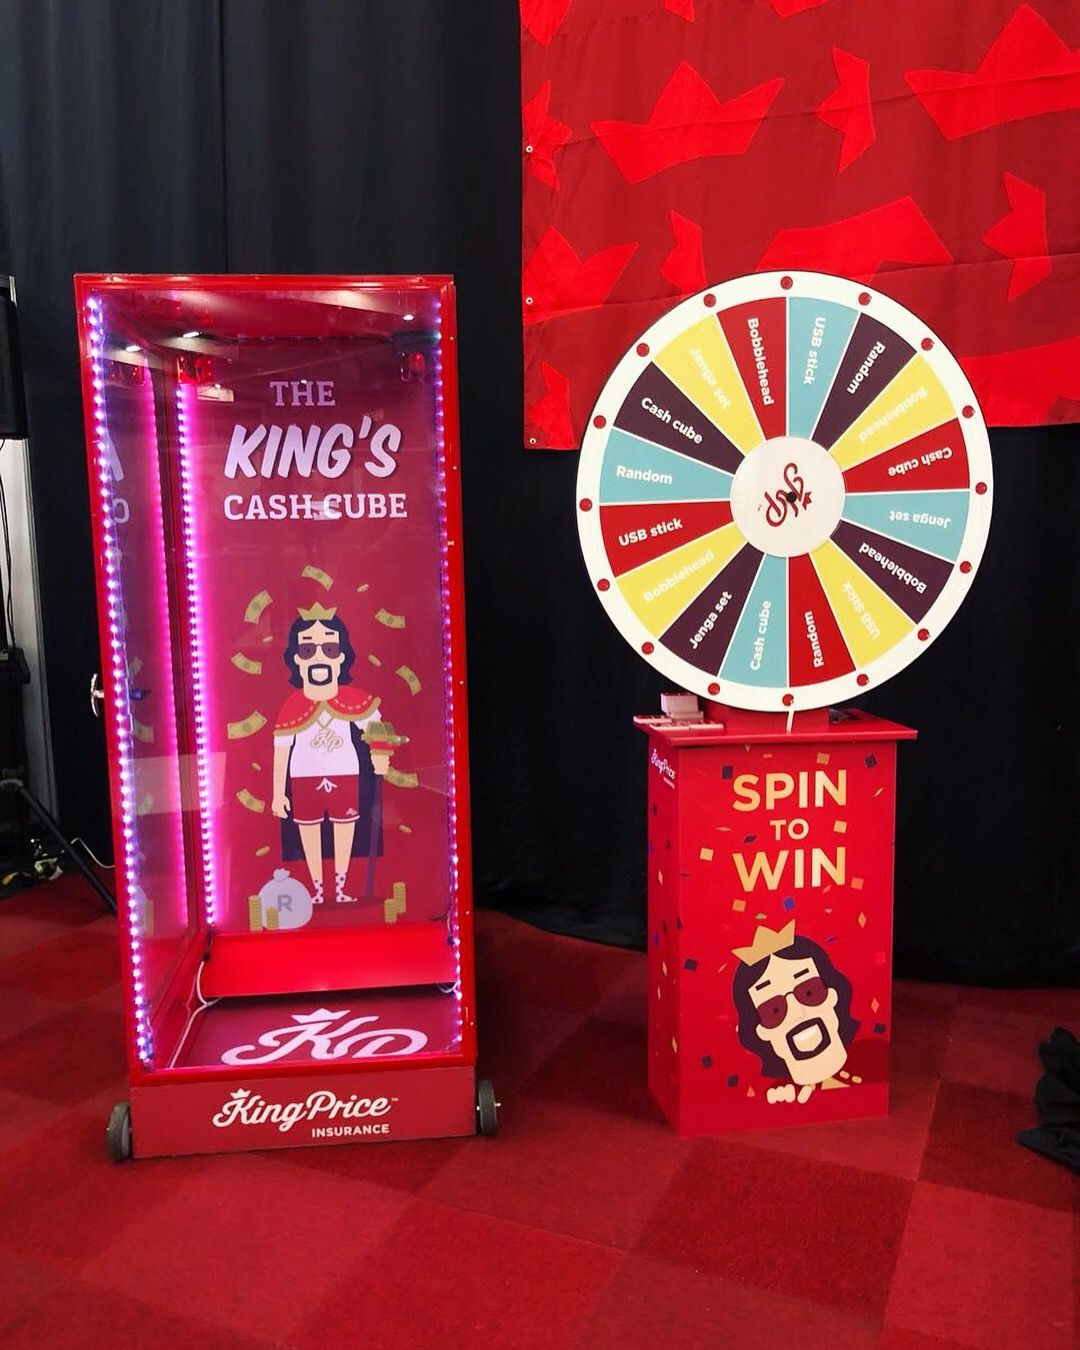 Spin And Win Or Enter The Cash Cube And Walk Away With As Much